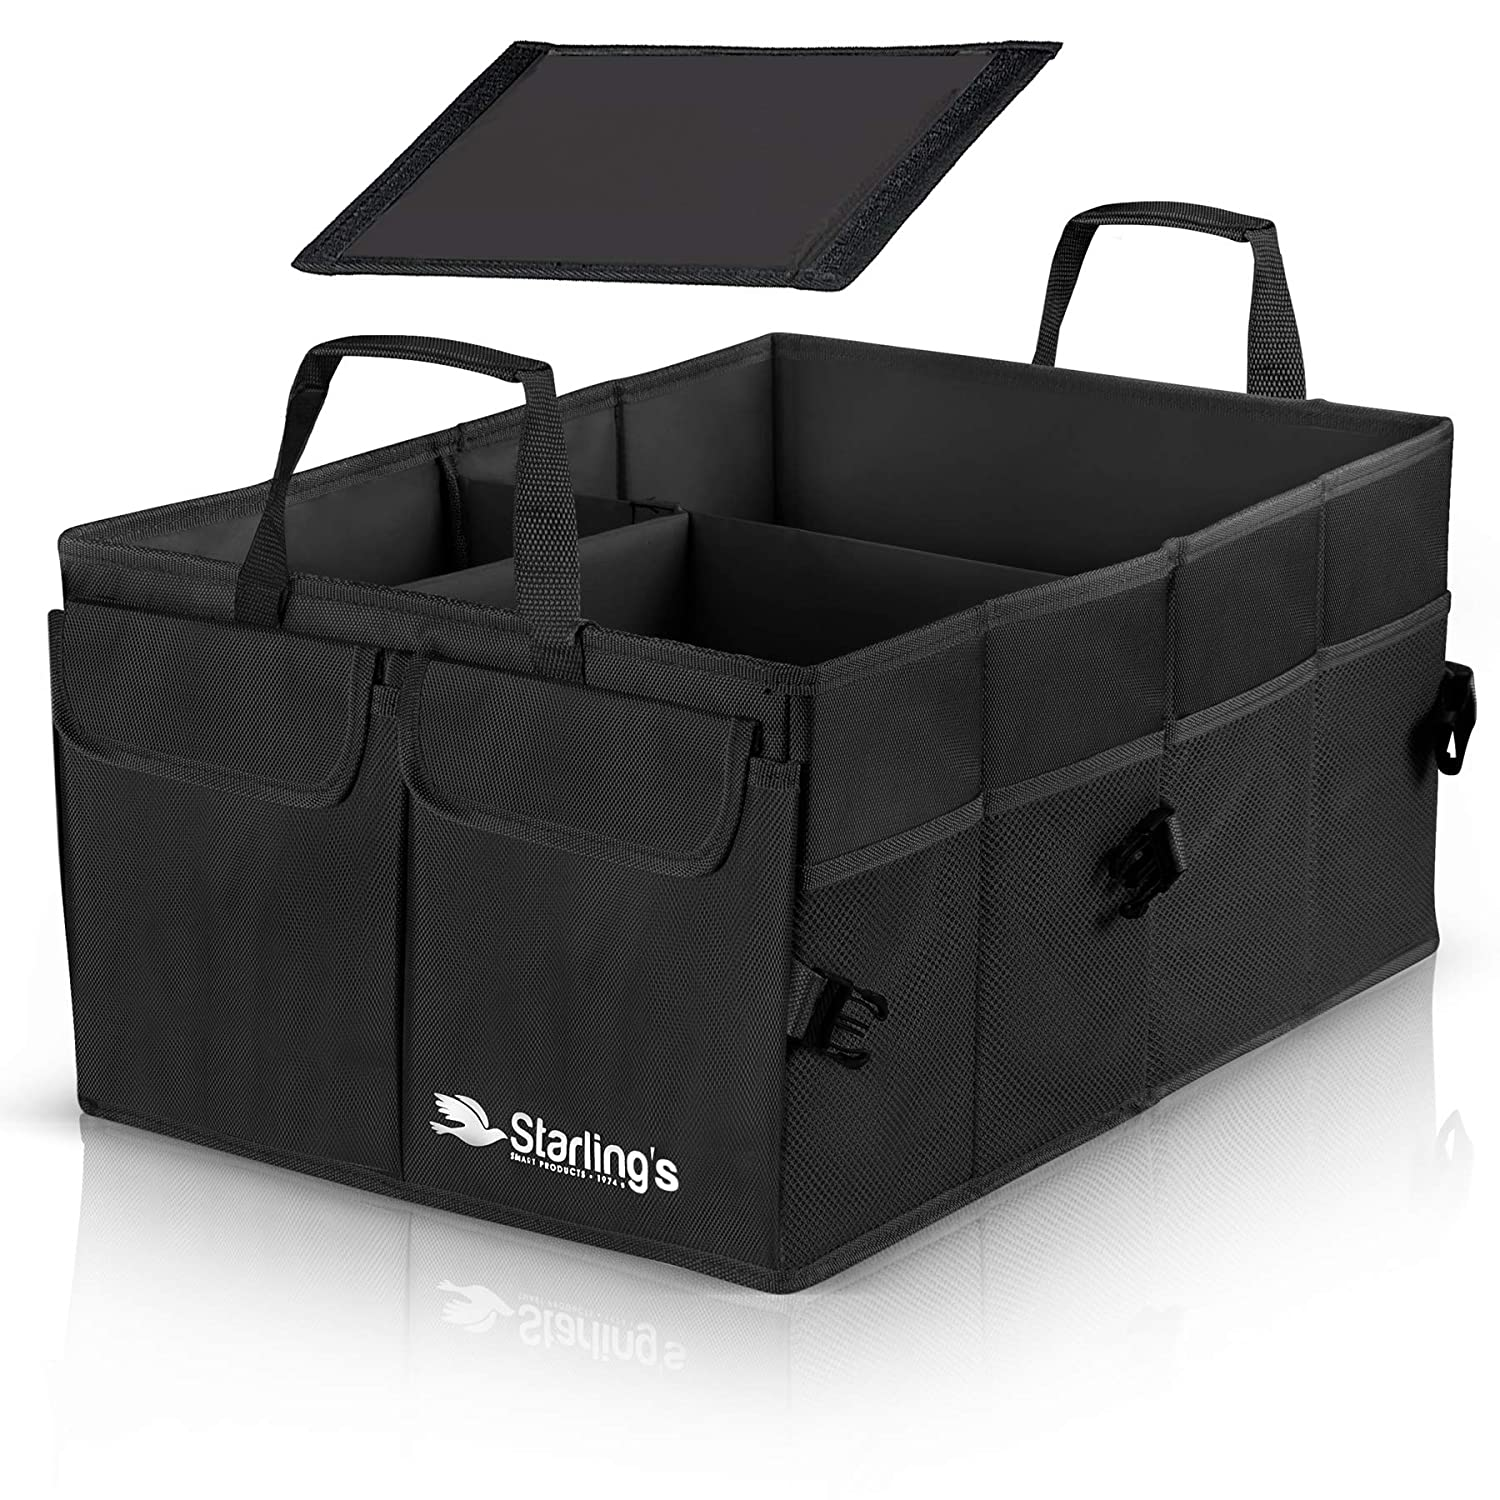 Car Trunk Organizer by Starling's-Black